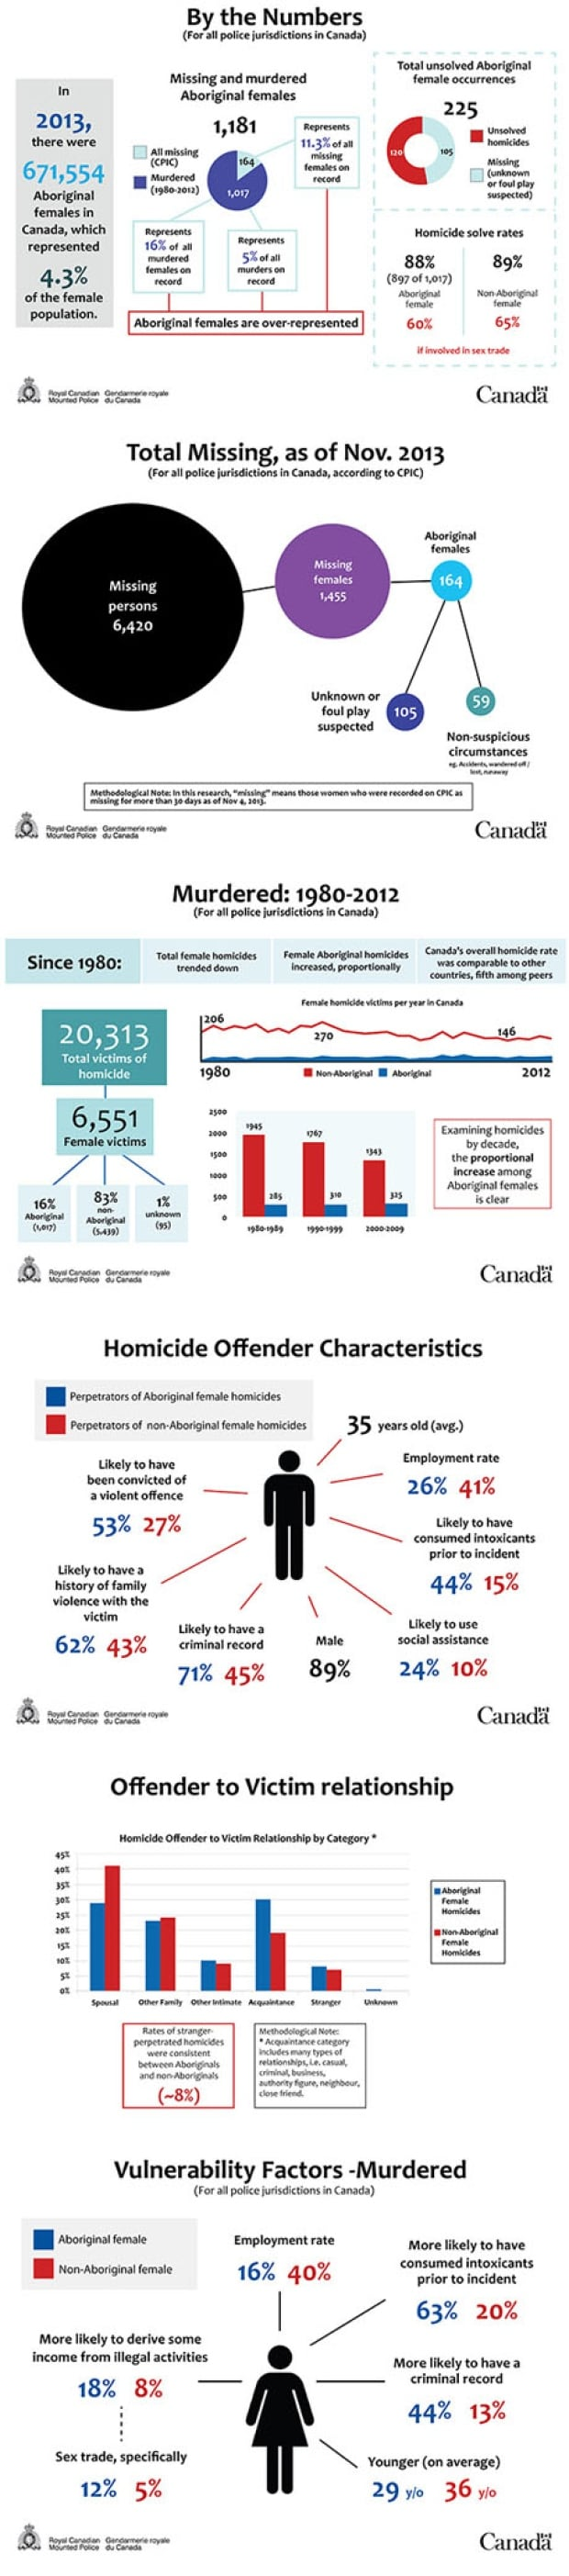 RCMP graphics